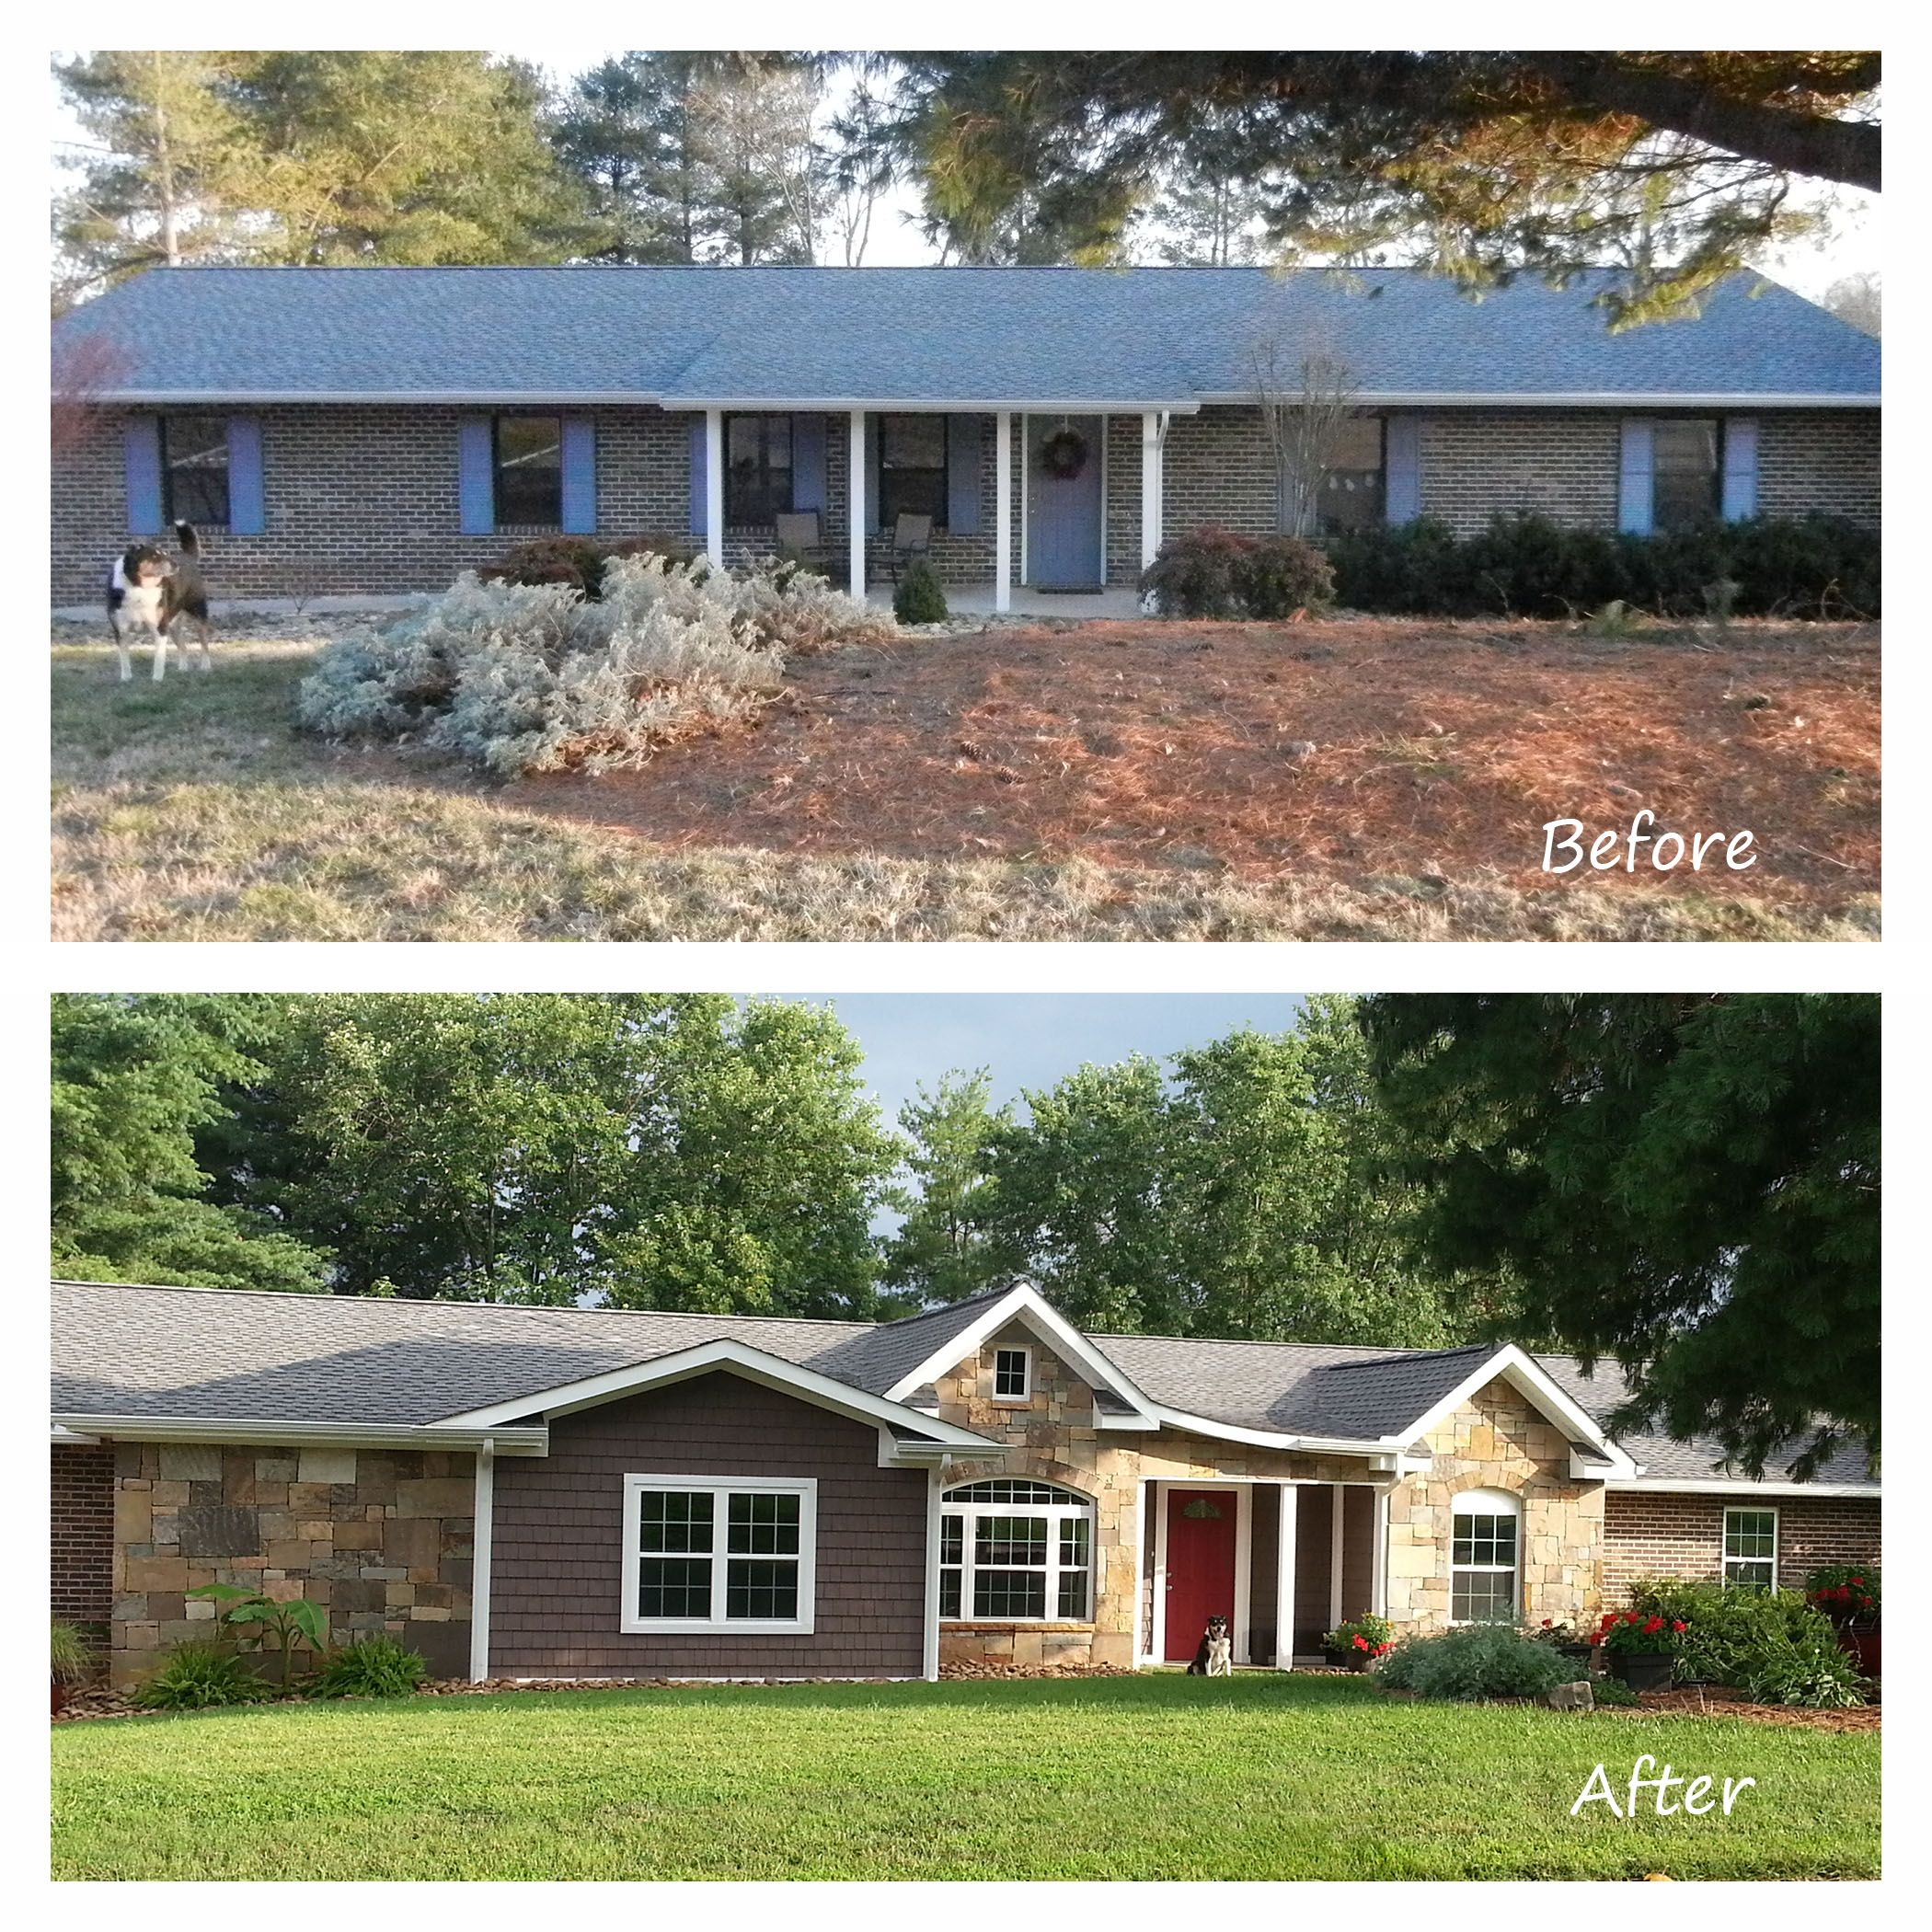 Before and after exterior renovation ranch house remodel for Small brick ranch homes